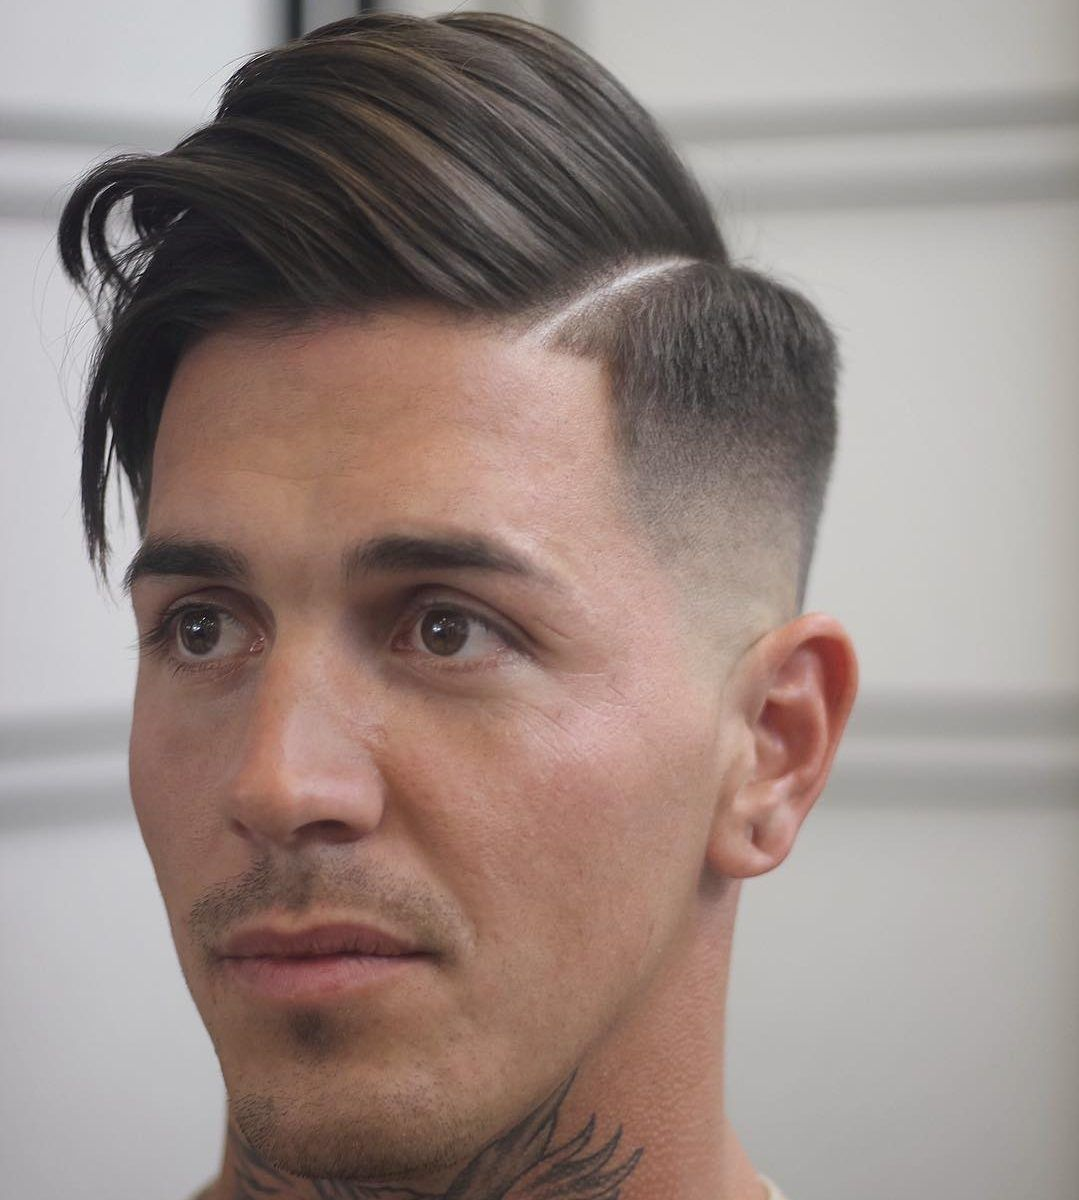 Guy Hairstyles Medium Length Hairstyles Mens With 10 Photo Gallery  Guy